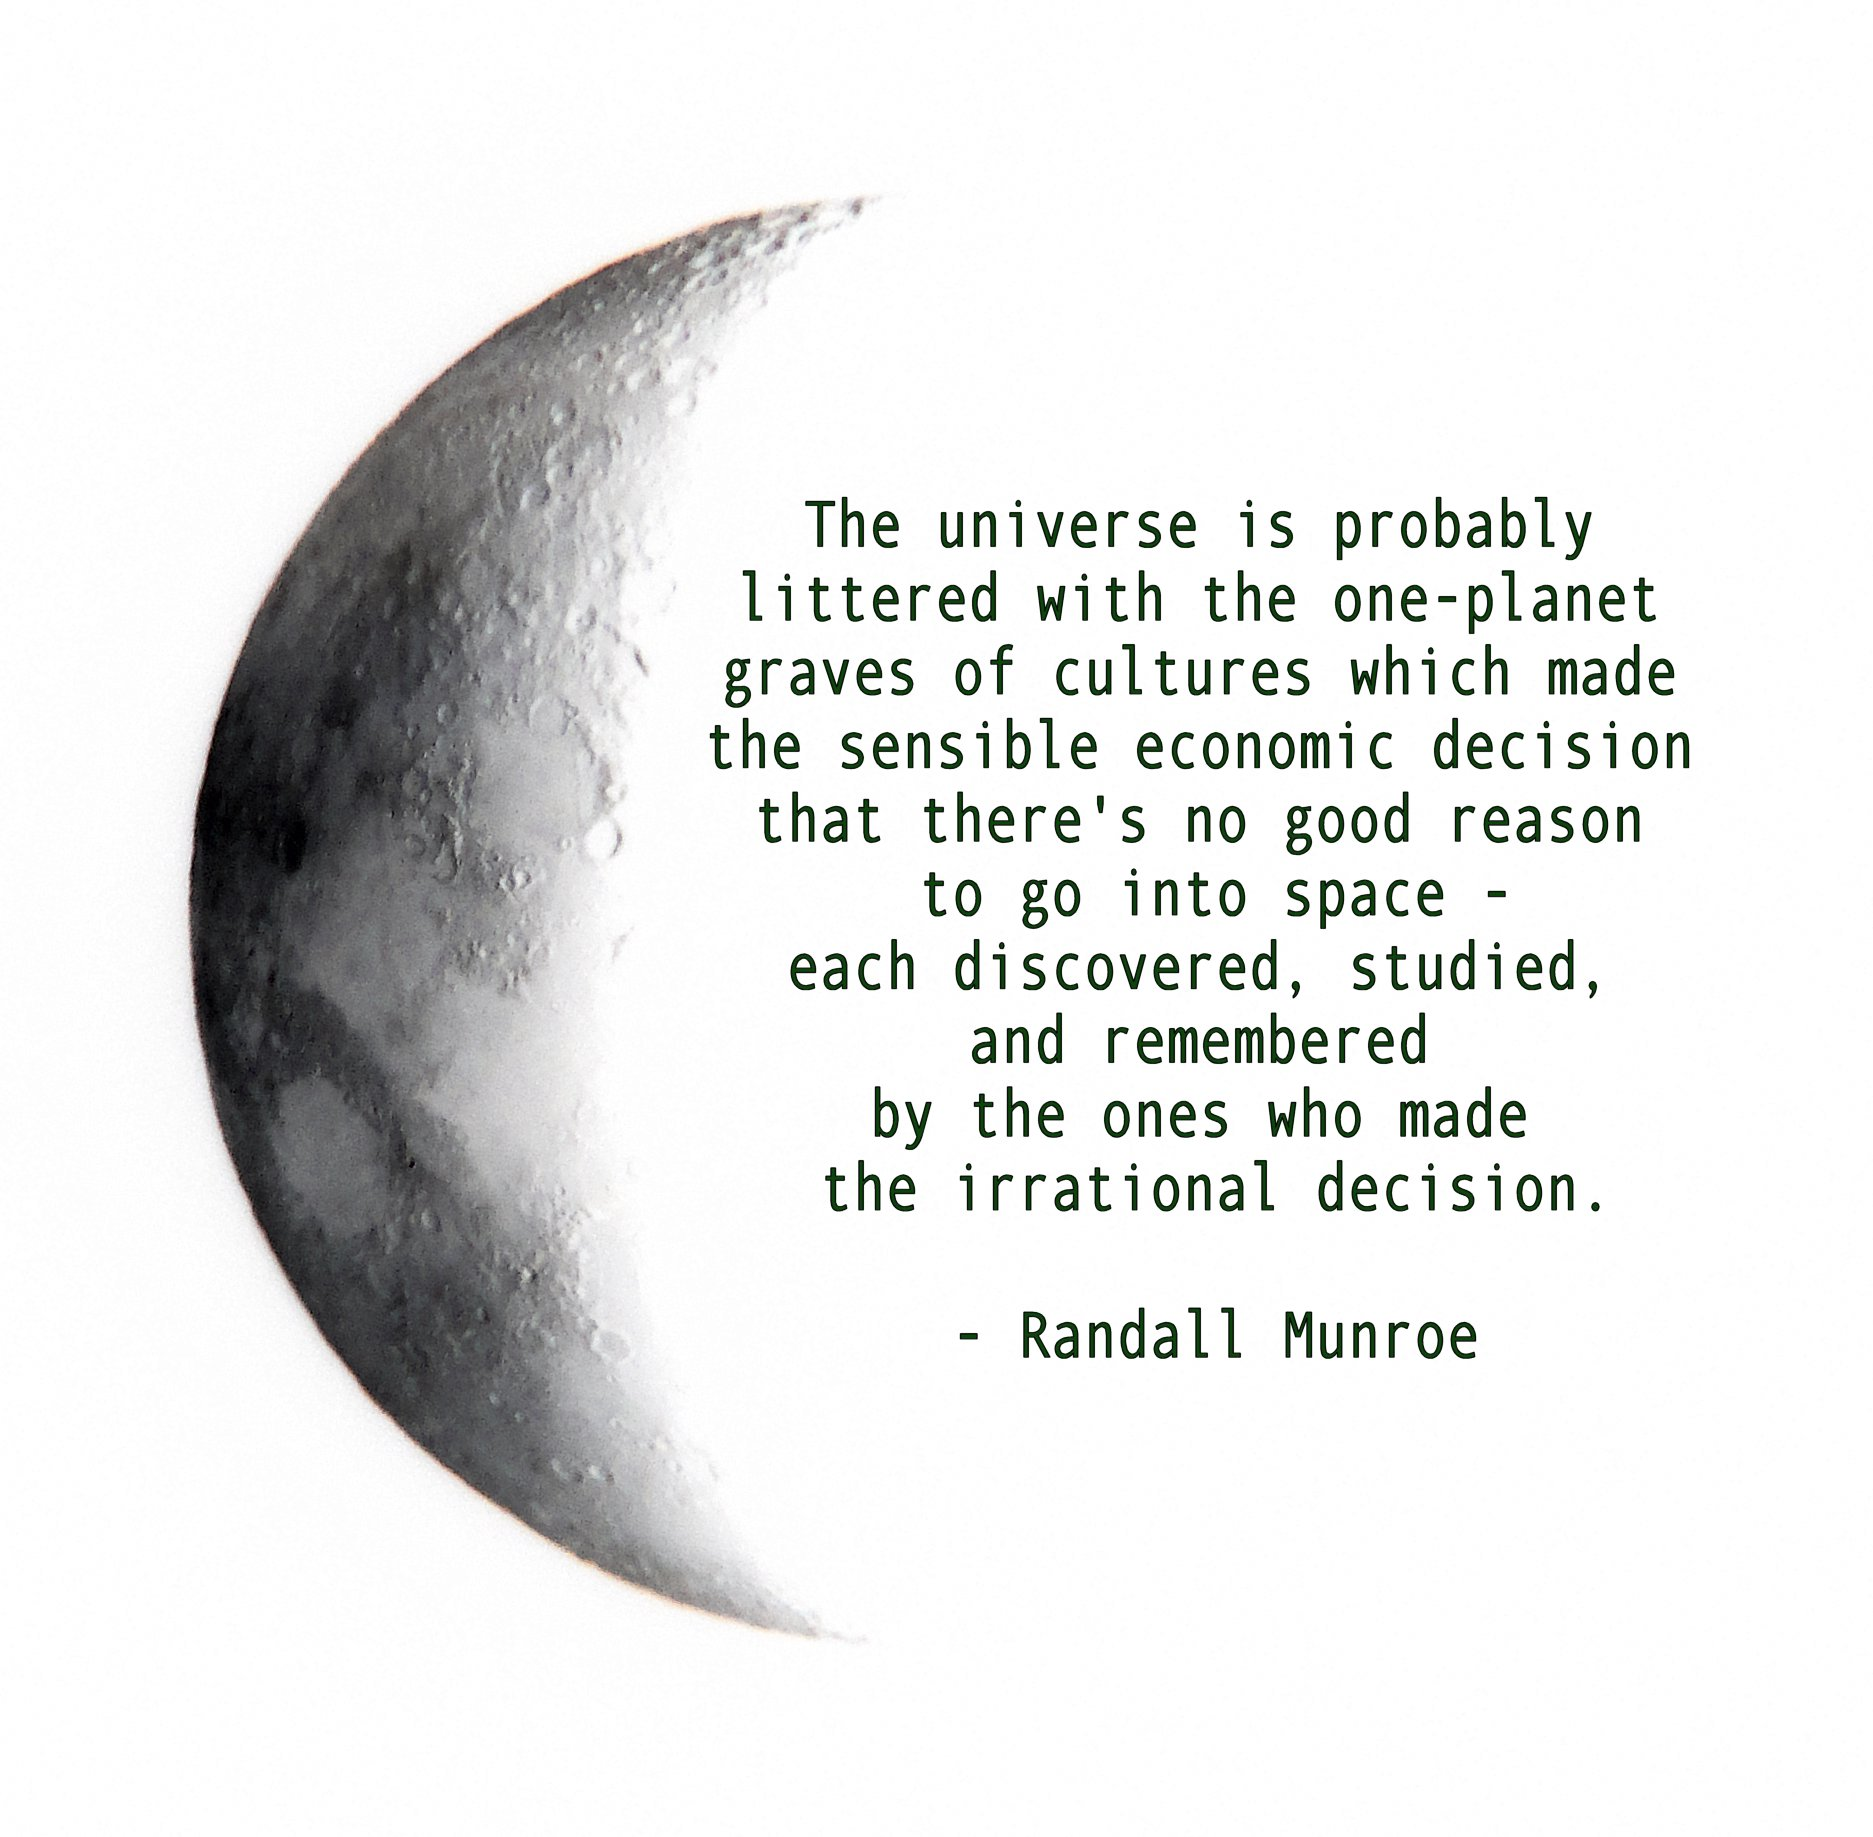 Randall Munroe's quote #4